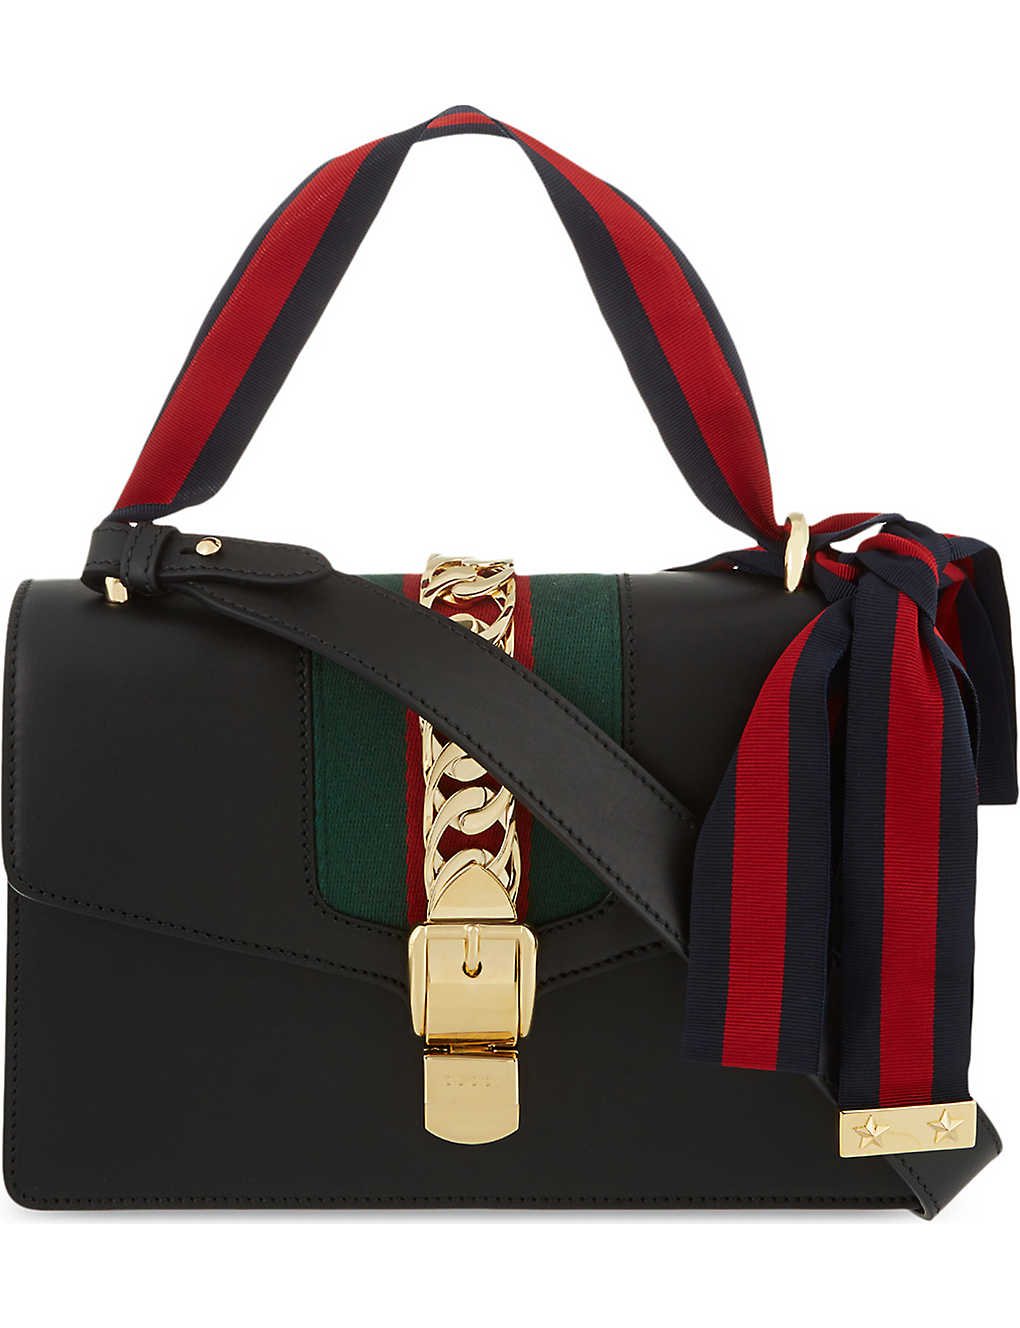 77836755a766aa GUCCI - Sylvie leather shoulder bag | Selfridges.com